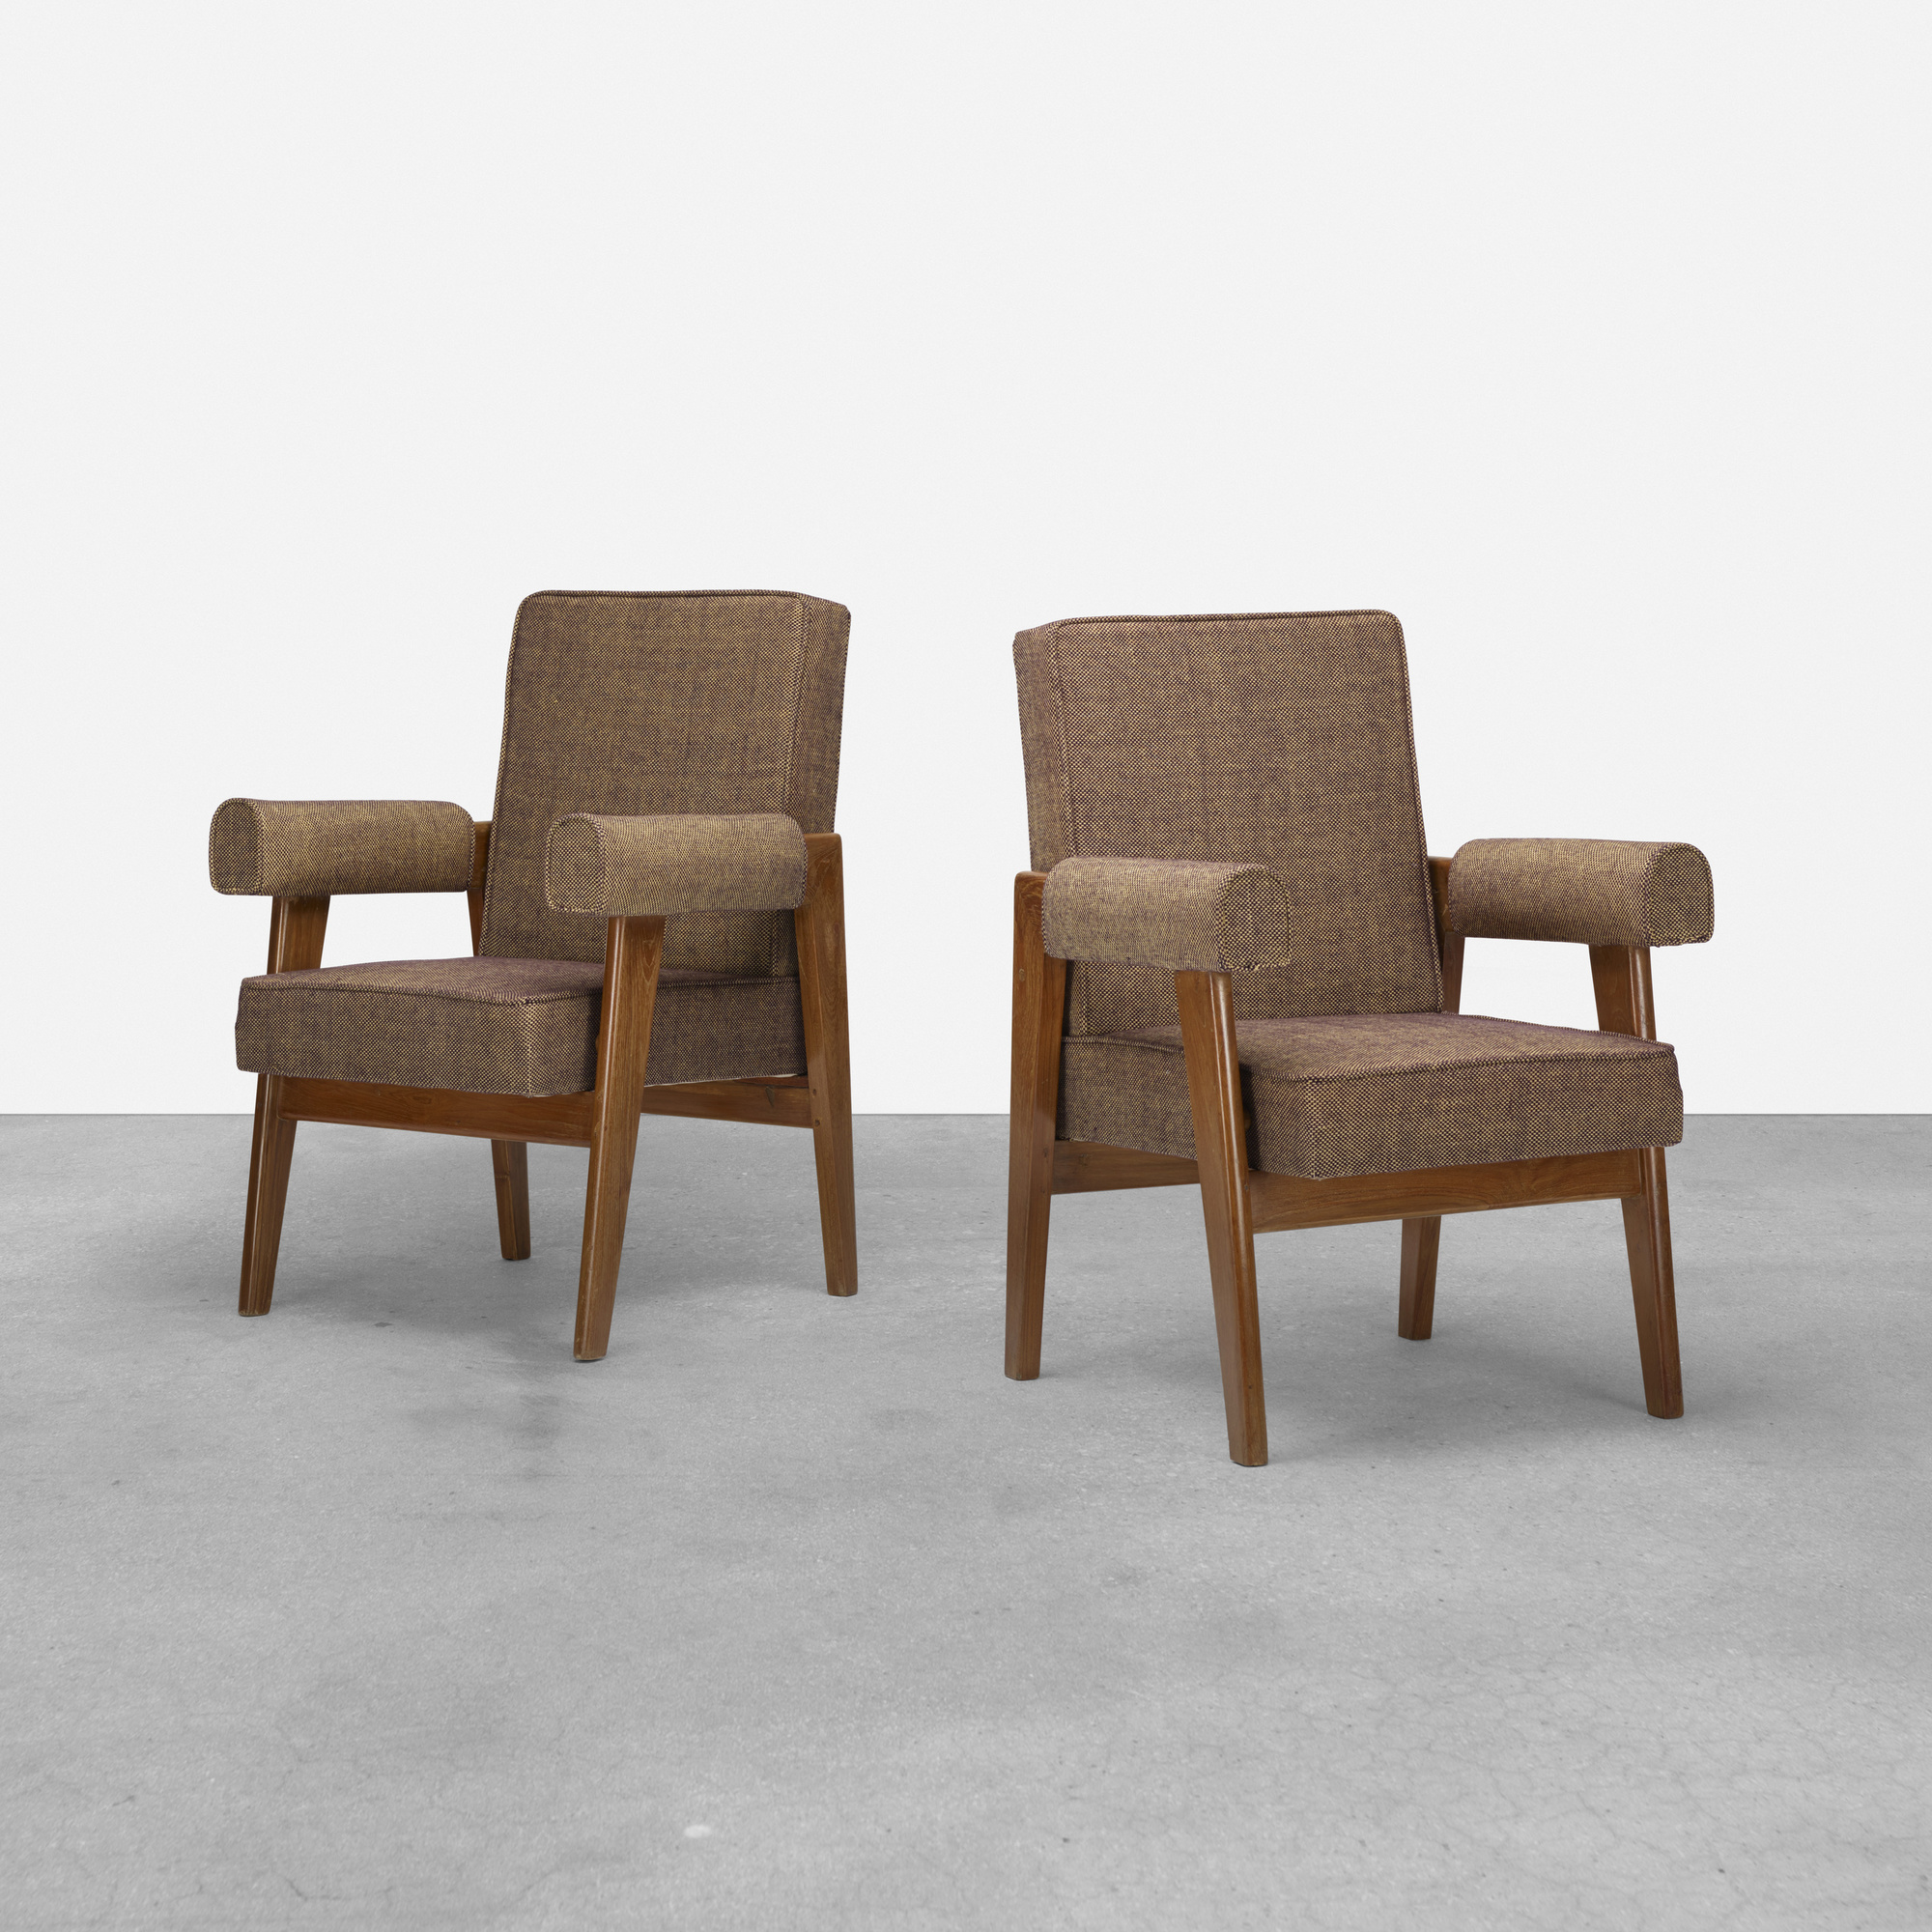 114: Le Corbusier and Pierre Jeanneret / pair of armchairs from the High Court, Chandigarh (1 of 4)